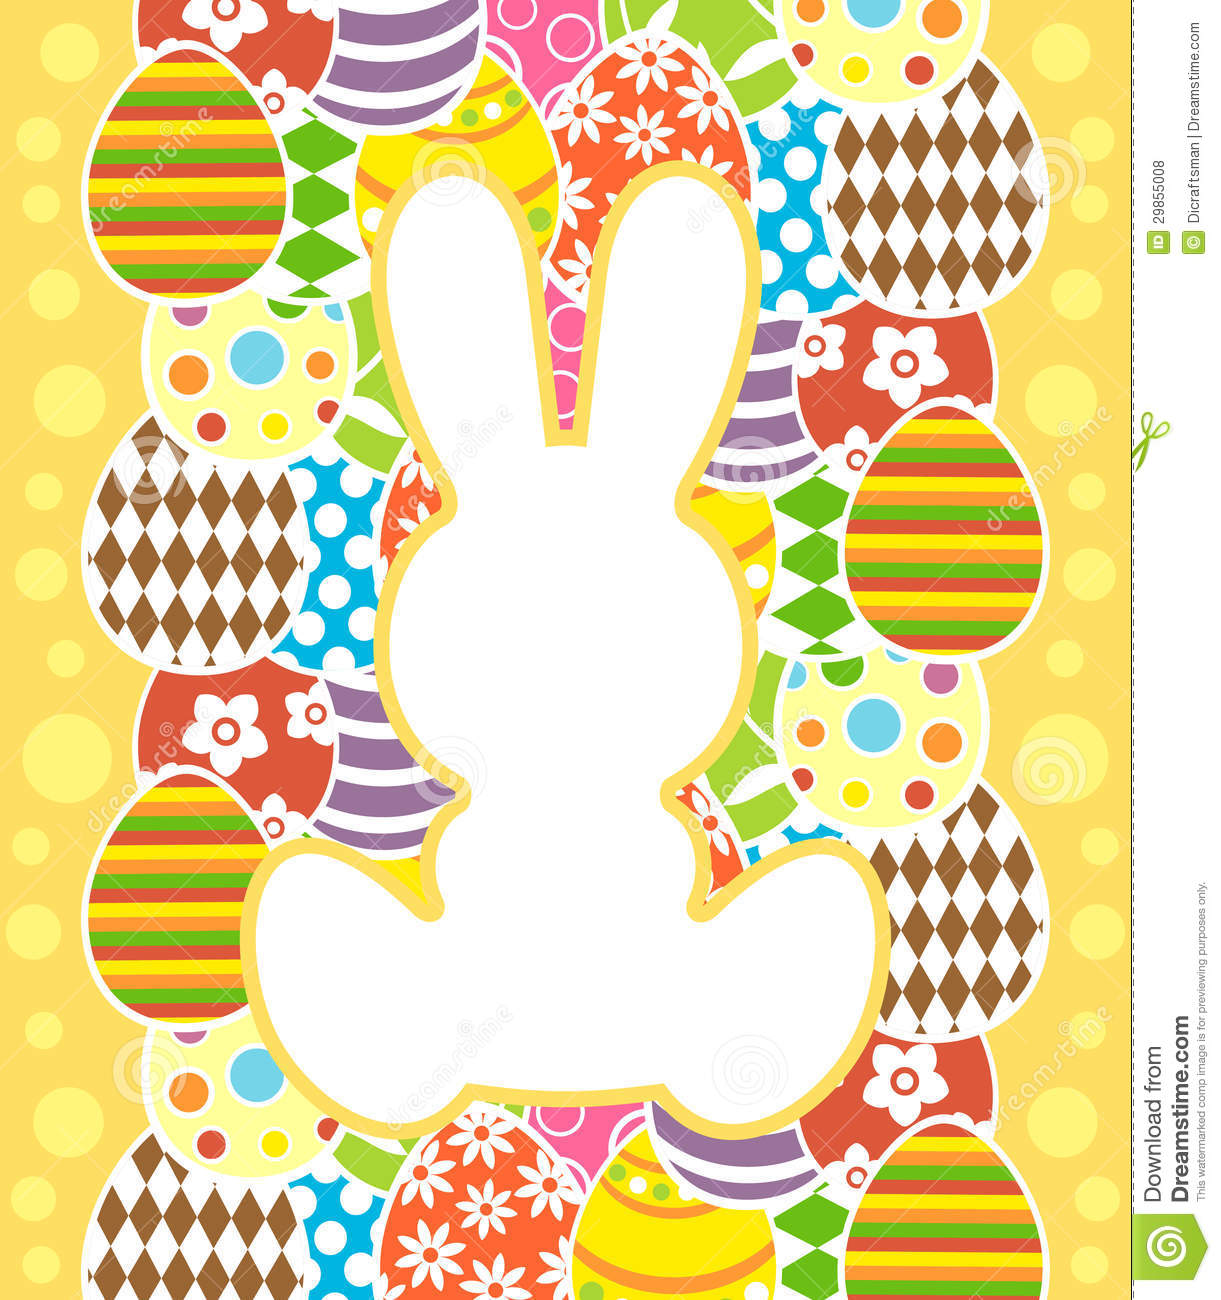 Easter Background Royalty Free Stock Photos - Image: 29855008